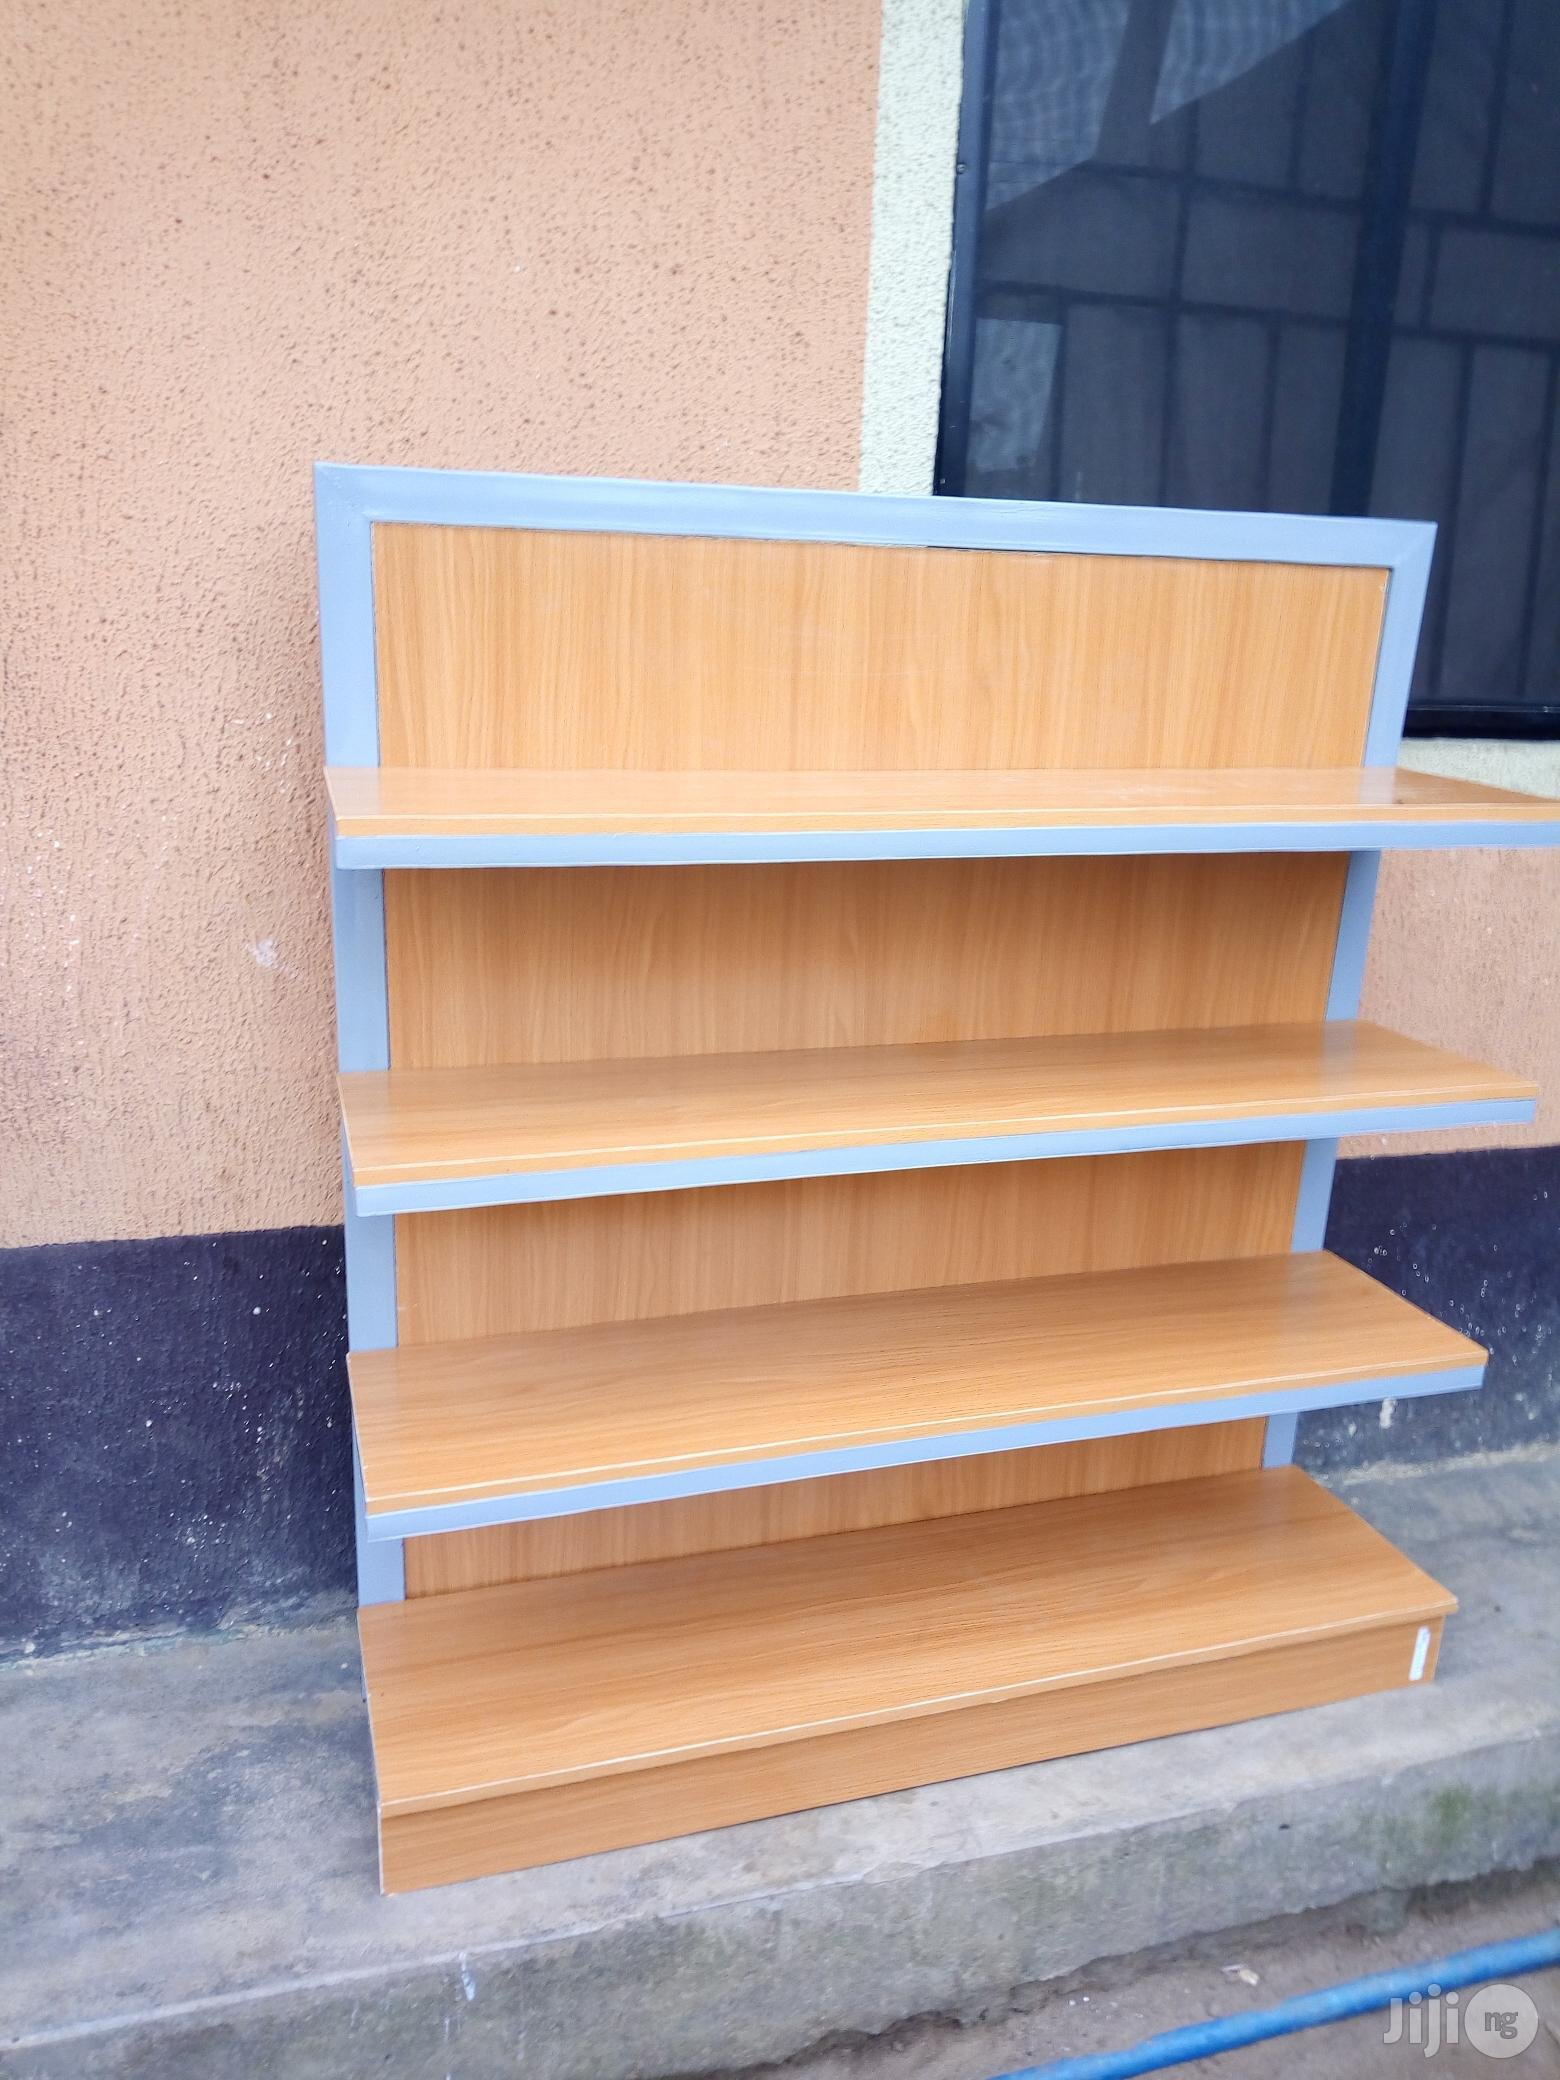 Shelves For Your Boutique, Display Store And Supermarket | Store Equipment for sale in Port-Harcourt, Rivers State, Nigeria